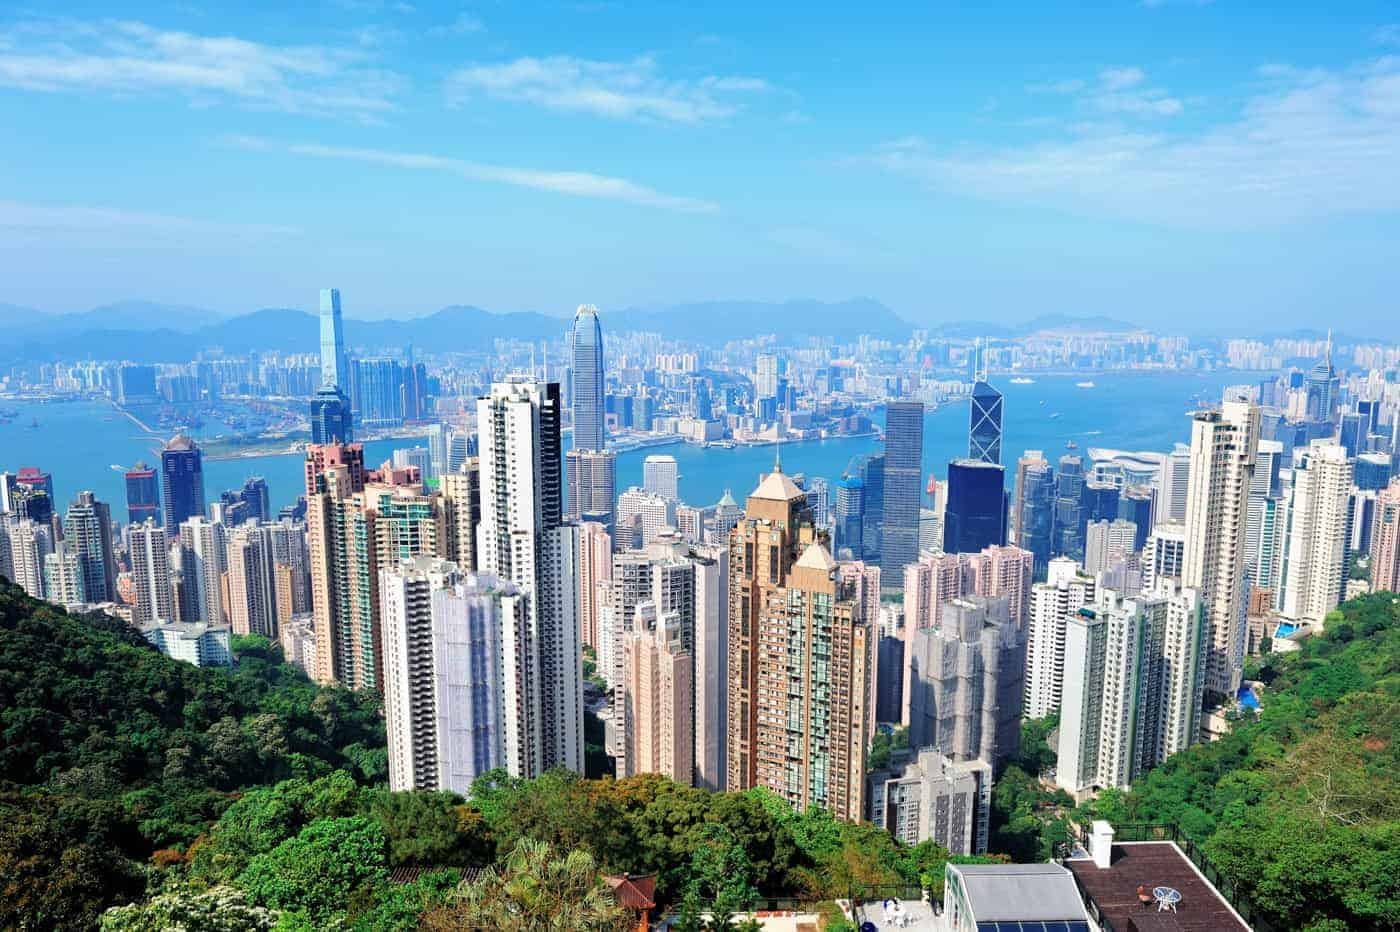 Hong Kong tour guide in bus rage incident against Chinese ...